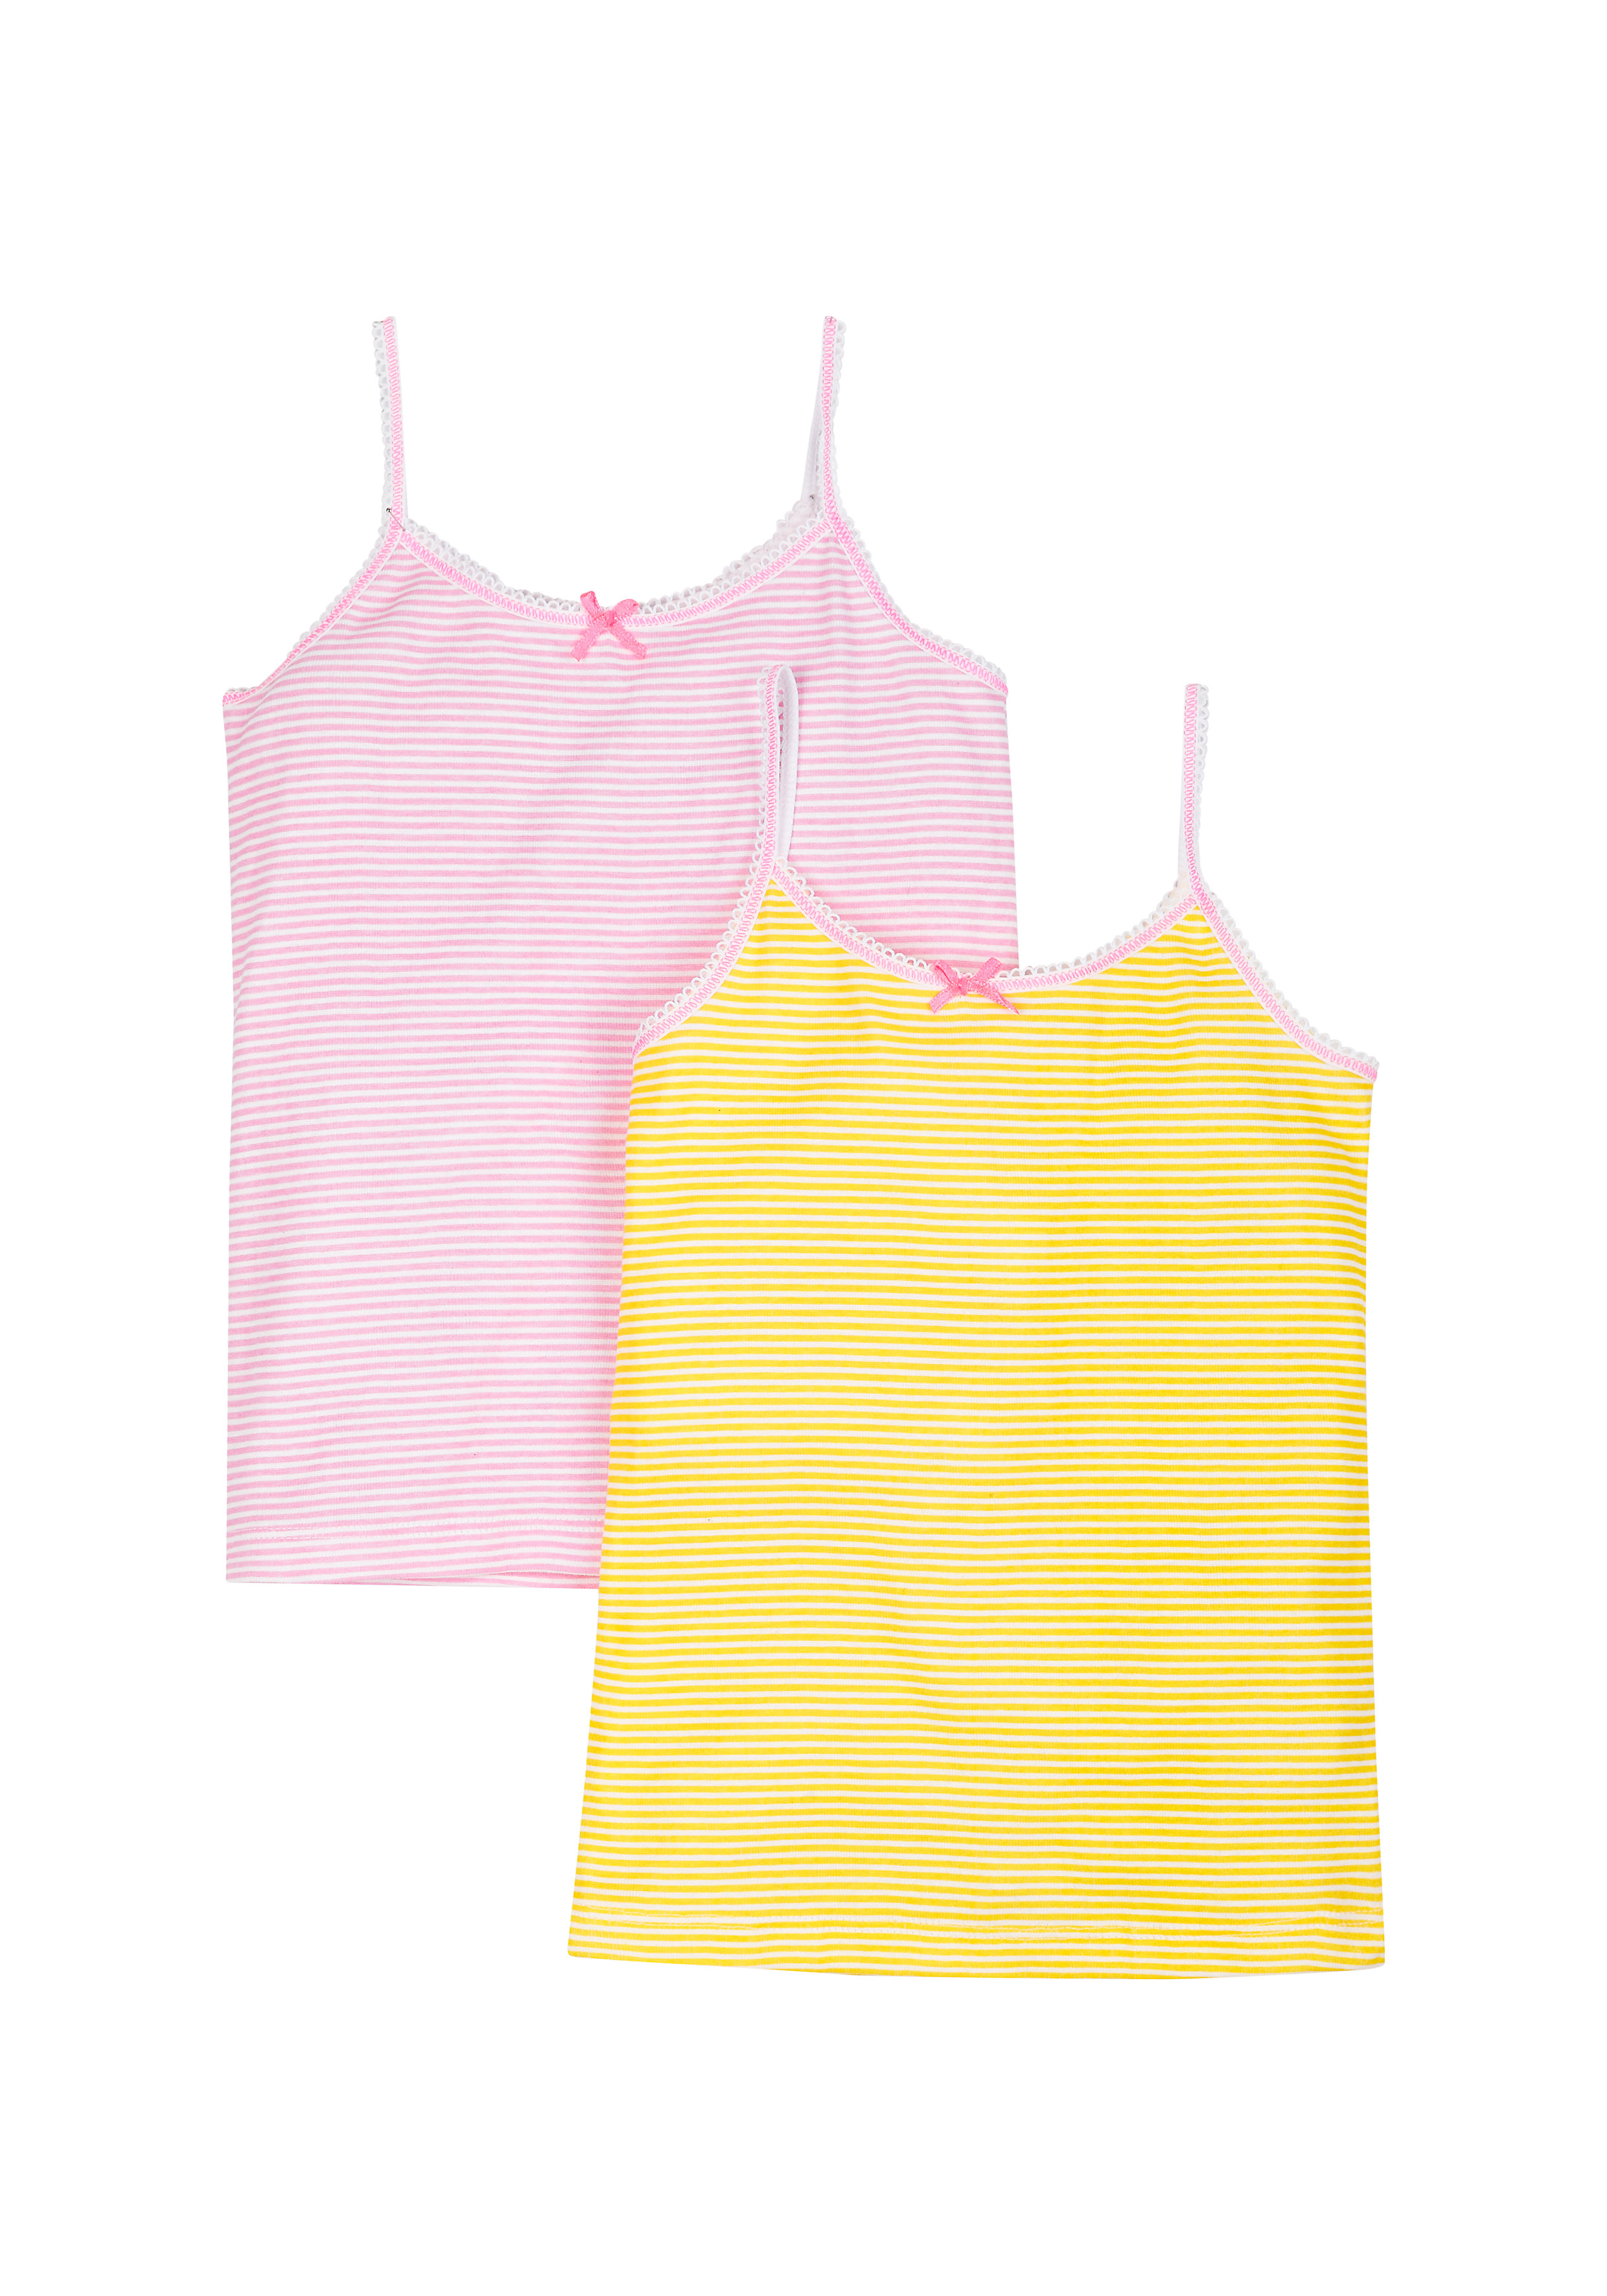 Mothercare | Girls Neon Stripe Cami Vests - Pack Of 2